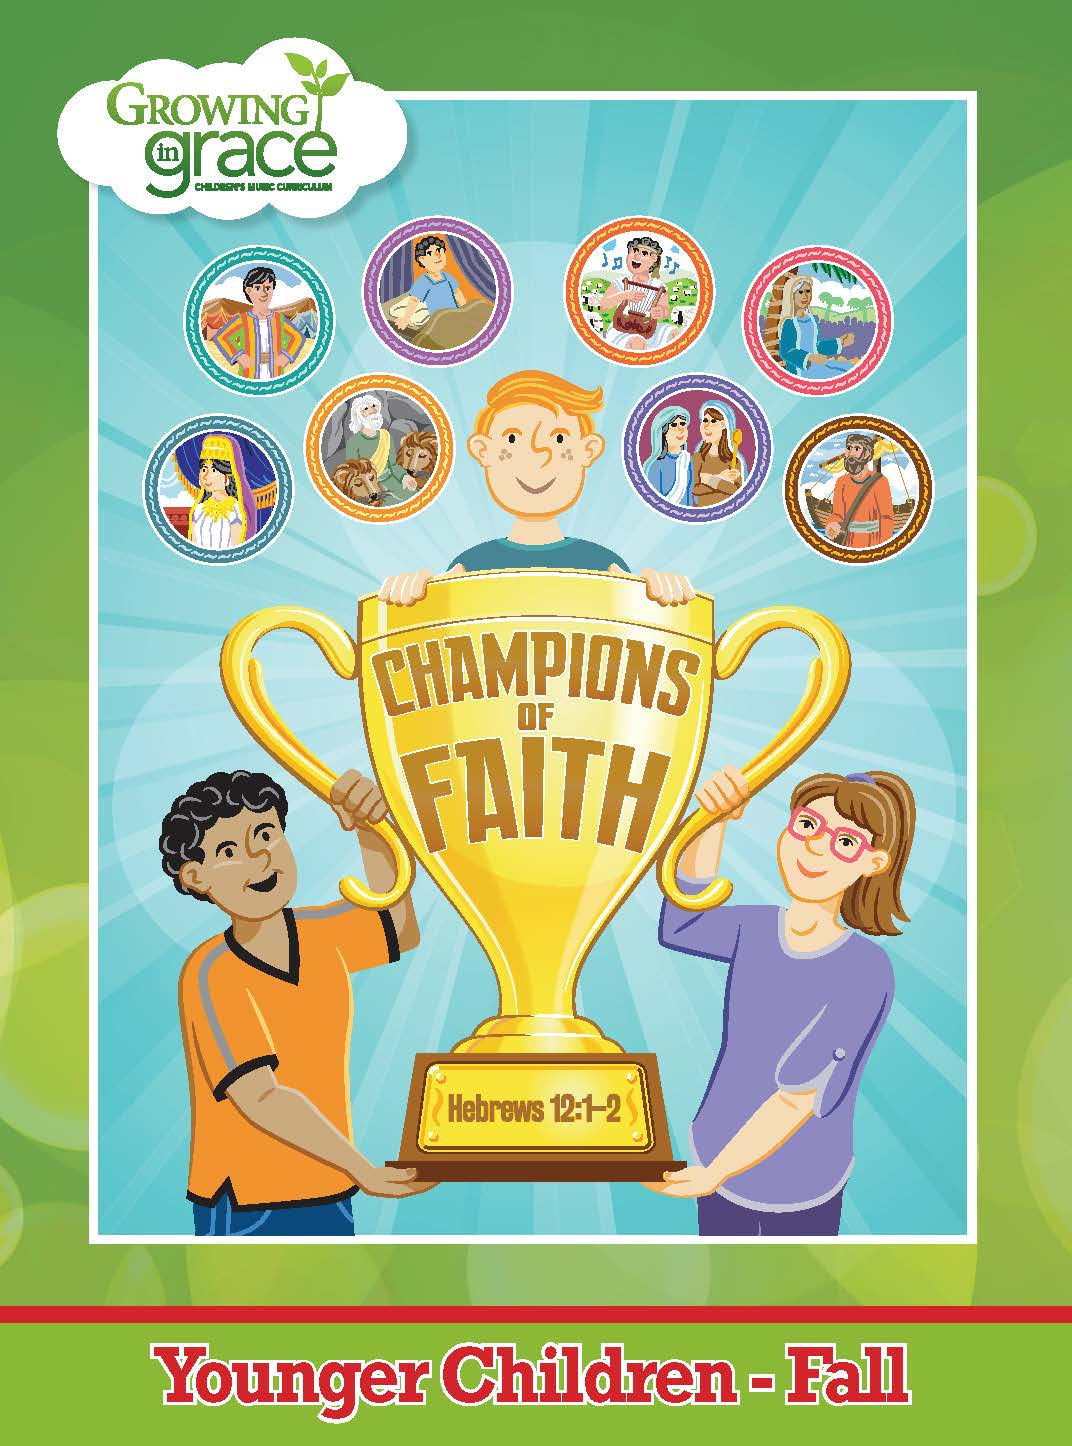 Champions of Faith from Growing in Grace: Younger Children - Fall